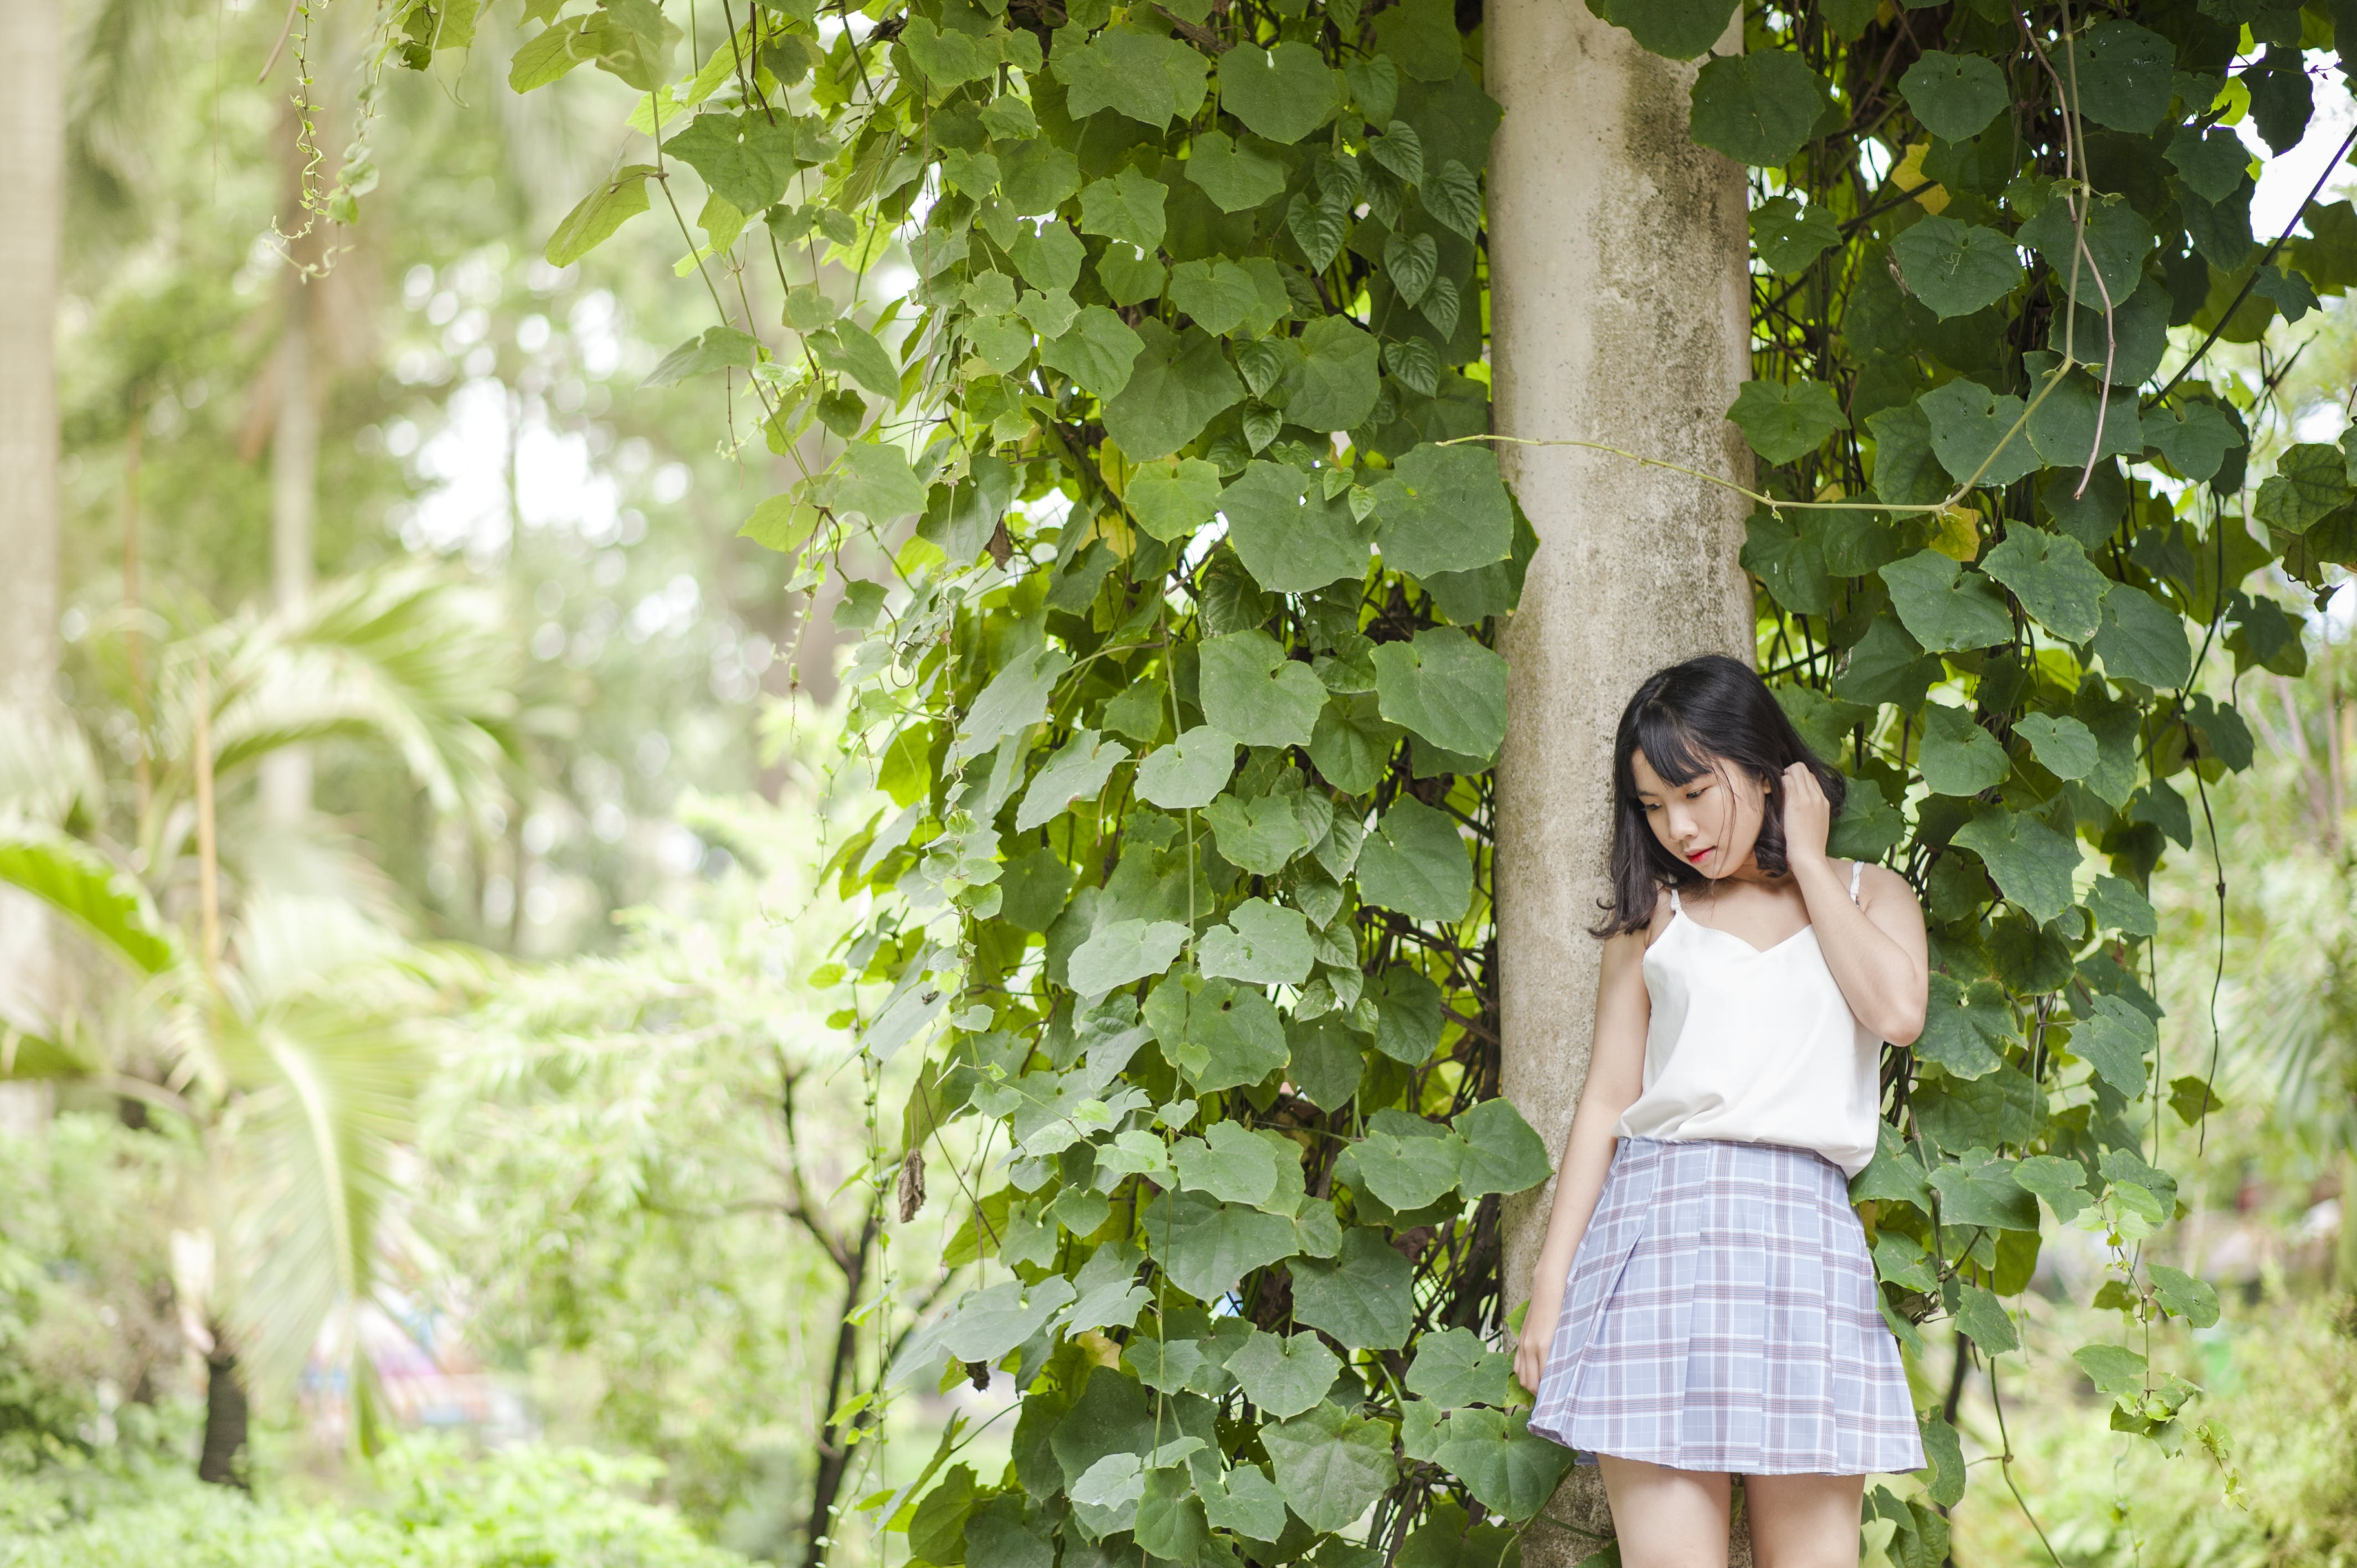 Woman in White Spaghetti Strap Top and Gray Skirt Standing in Front of Tree